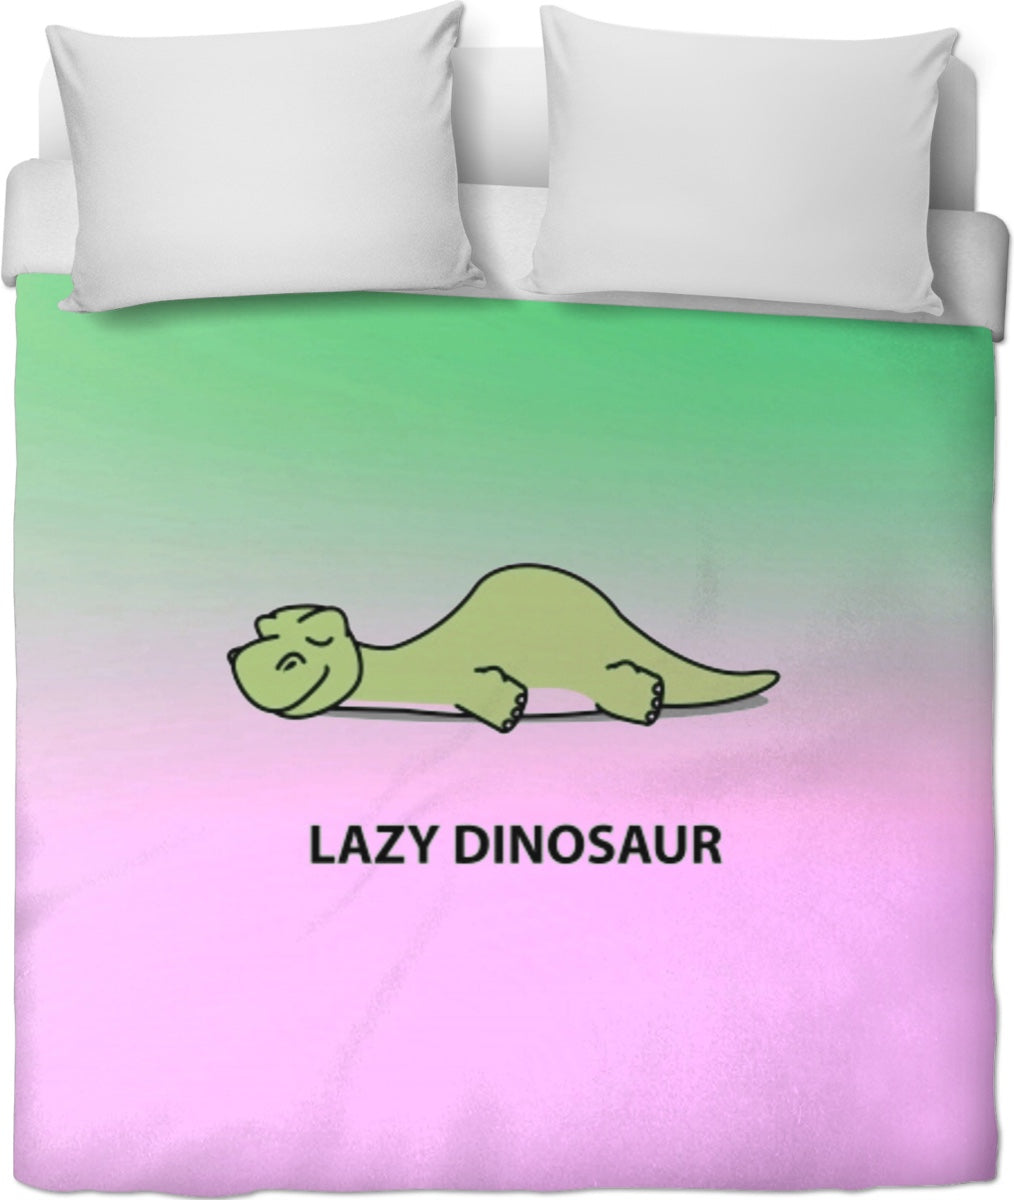 Lazy Dinosaur Duvet Cover